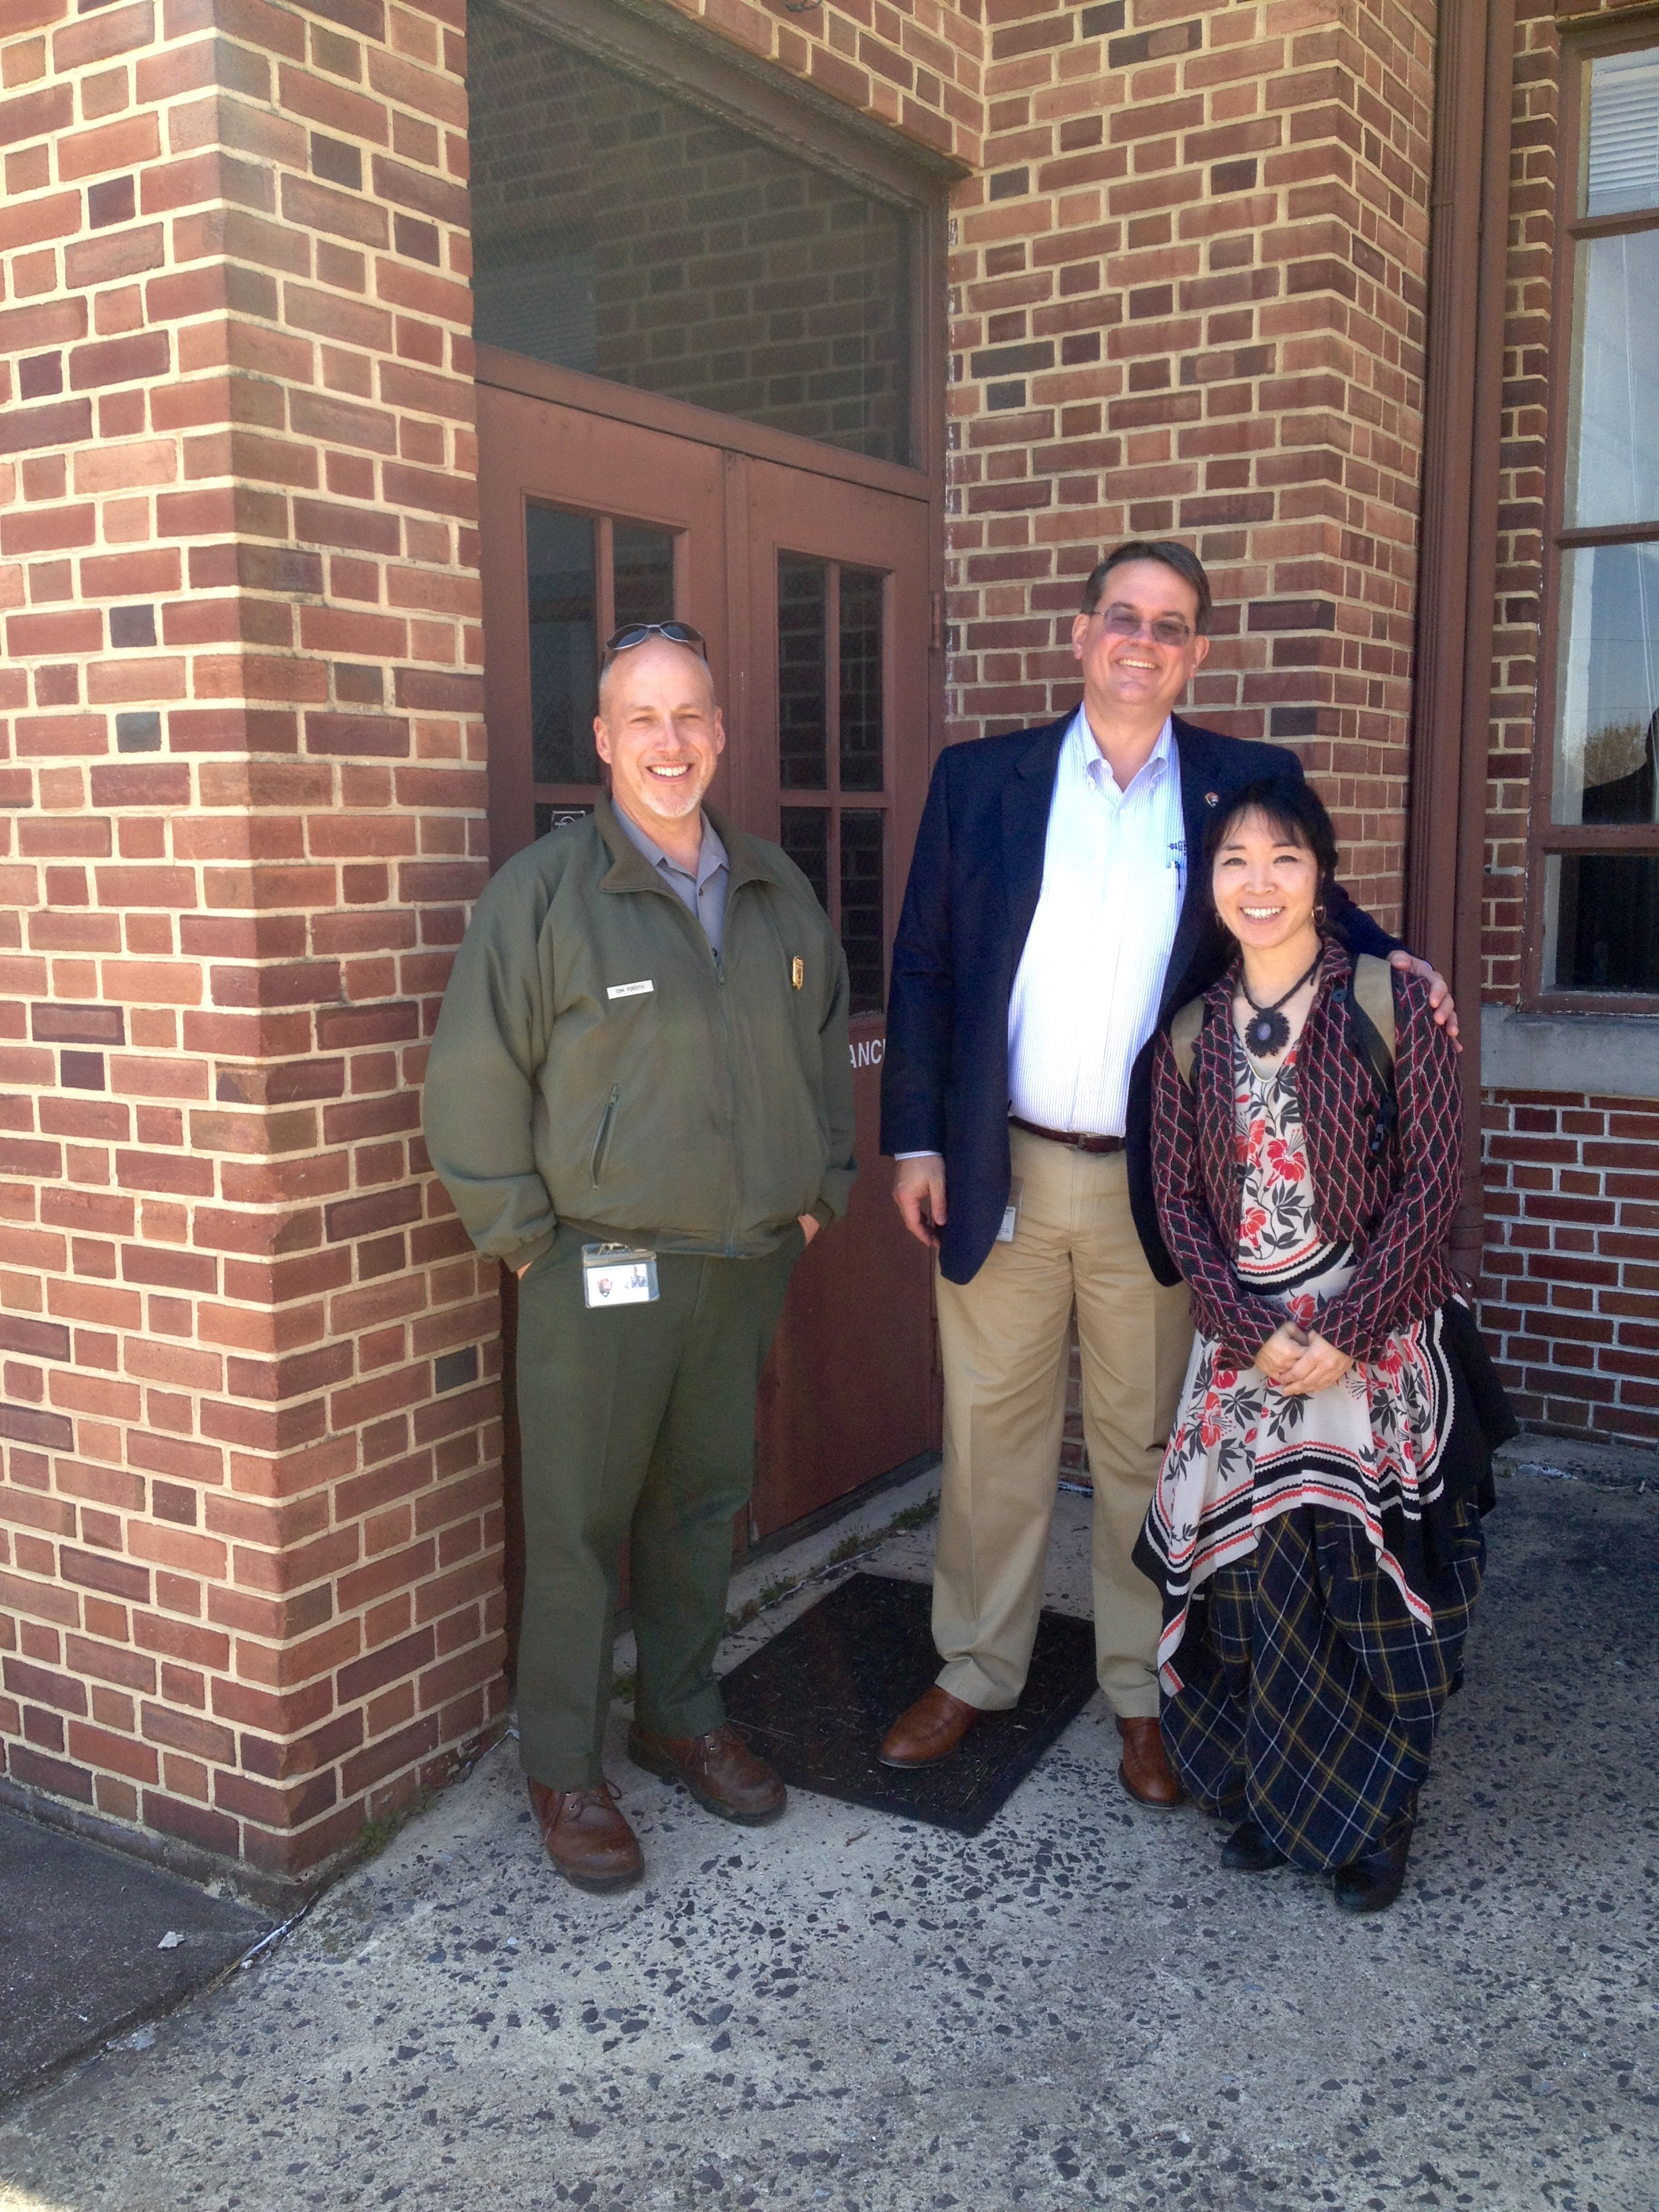 Tom Forsythe (deputy Superintendent)and Ed Clark (Superintendent) at the Armory